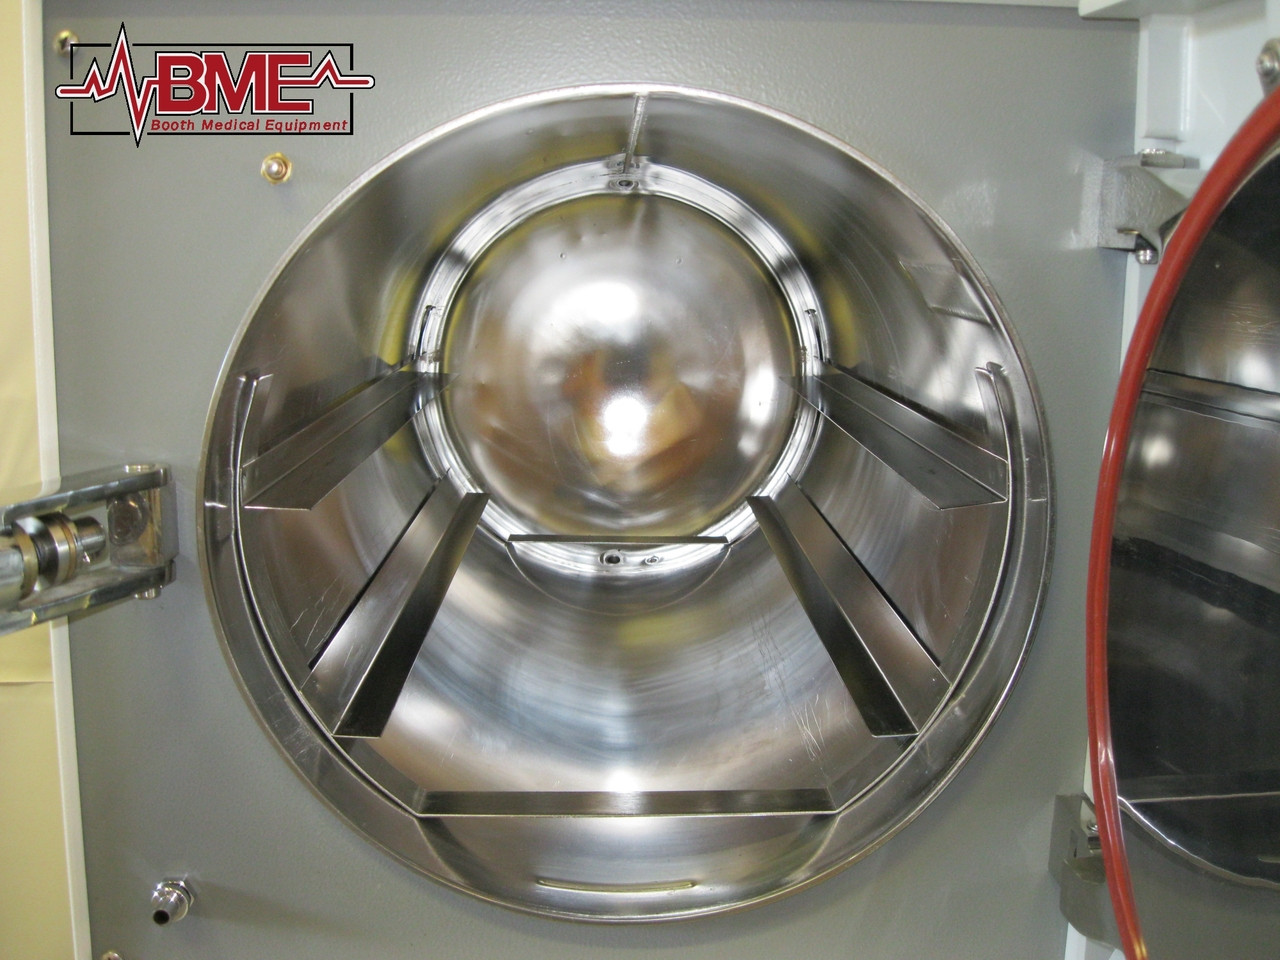 Booth Medical - Tuttnauer 3850M 230V Autoclave - Chamber